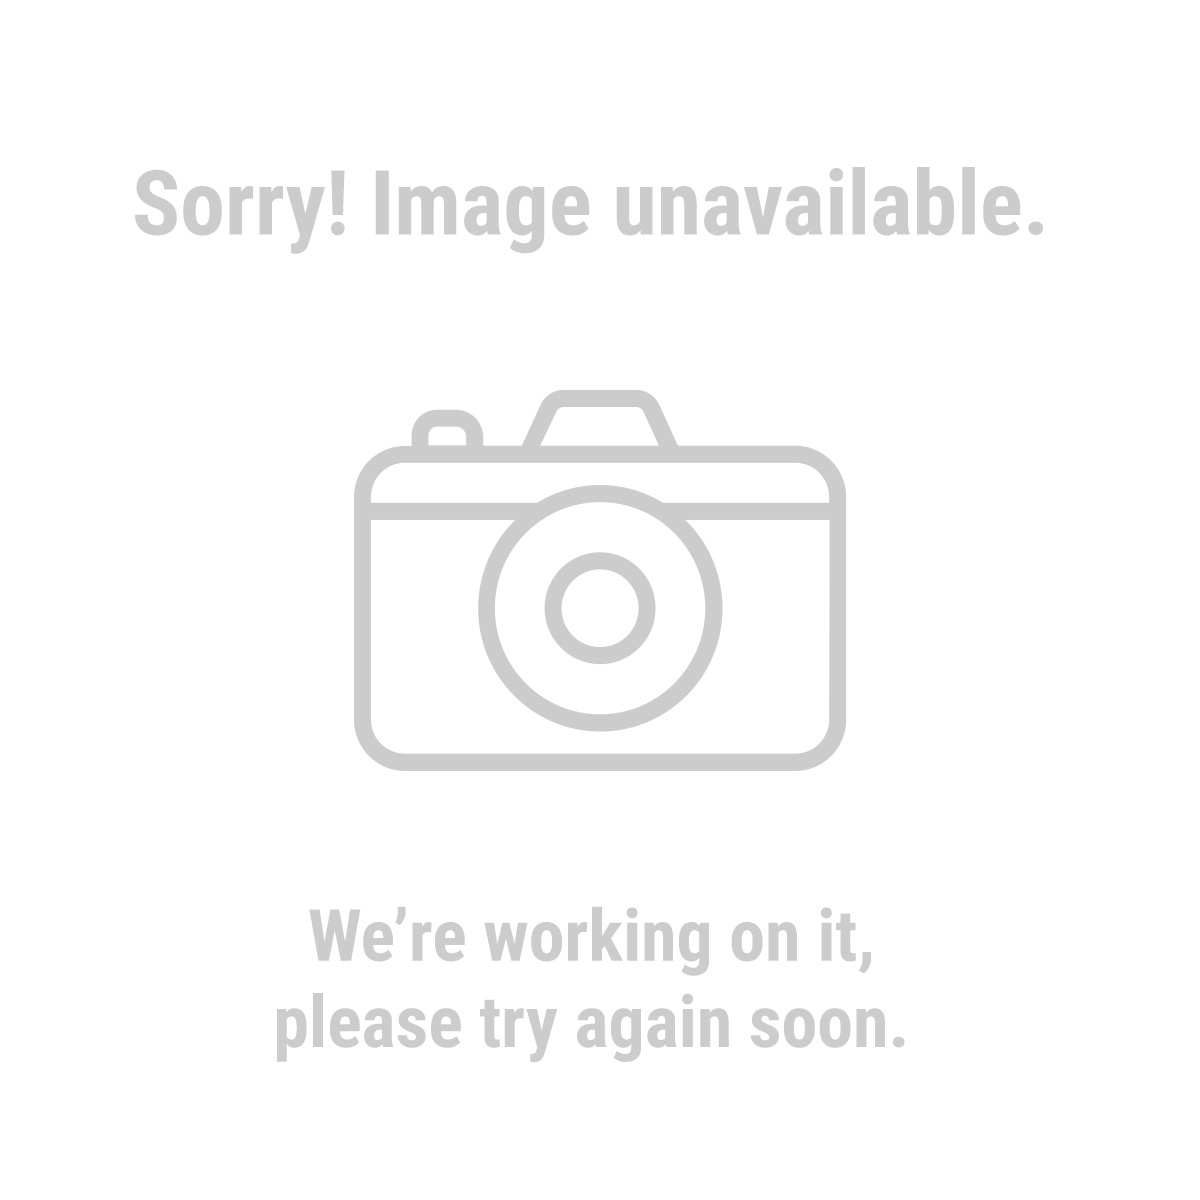 "Haul-Master 90153 1090 Lb. Capacity 40-1/2"" x 48"" Mini Utility Trailer with 12"" Four-Lug Wheels and Tires"